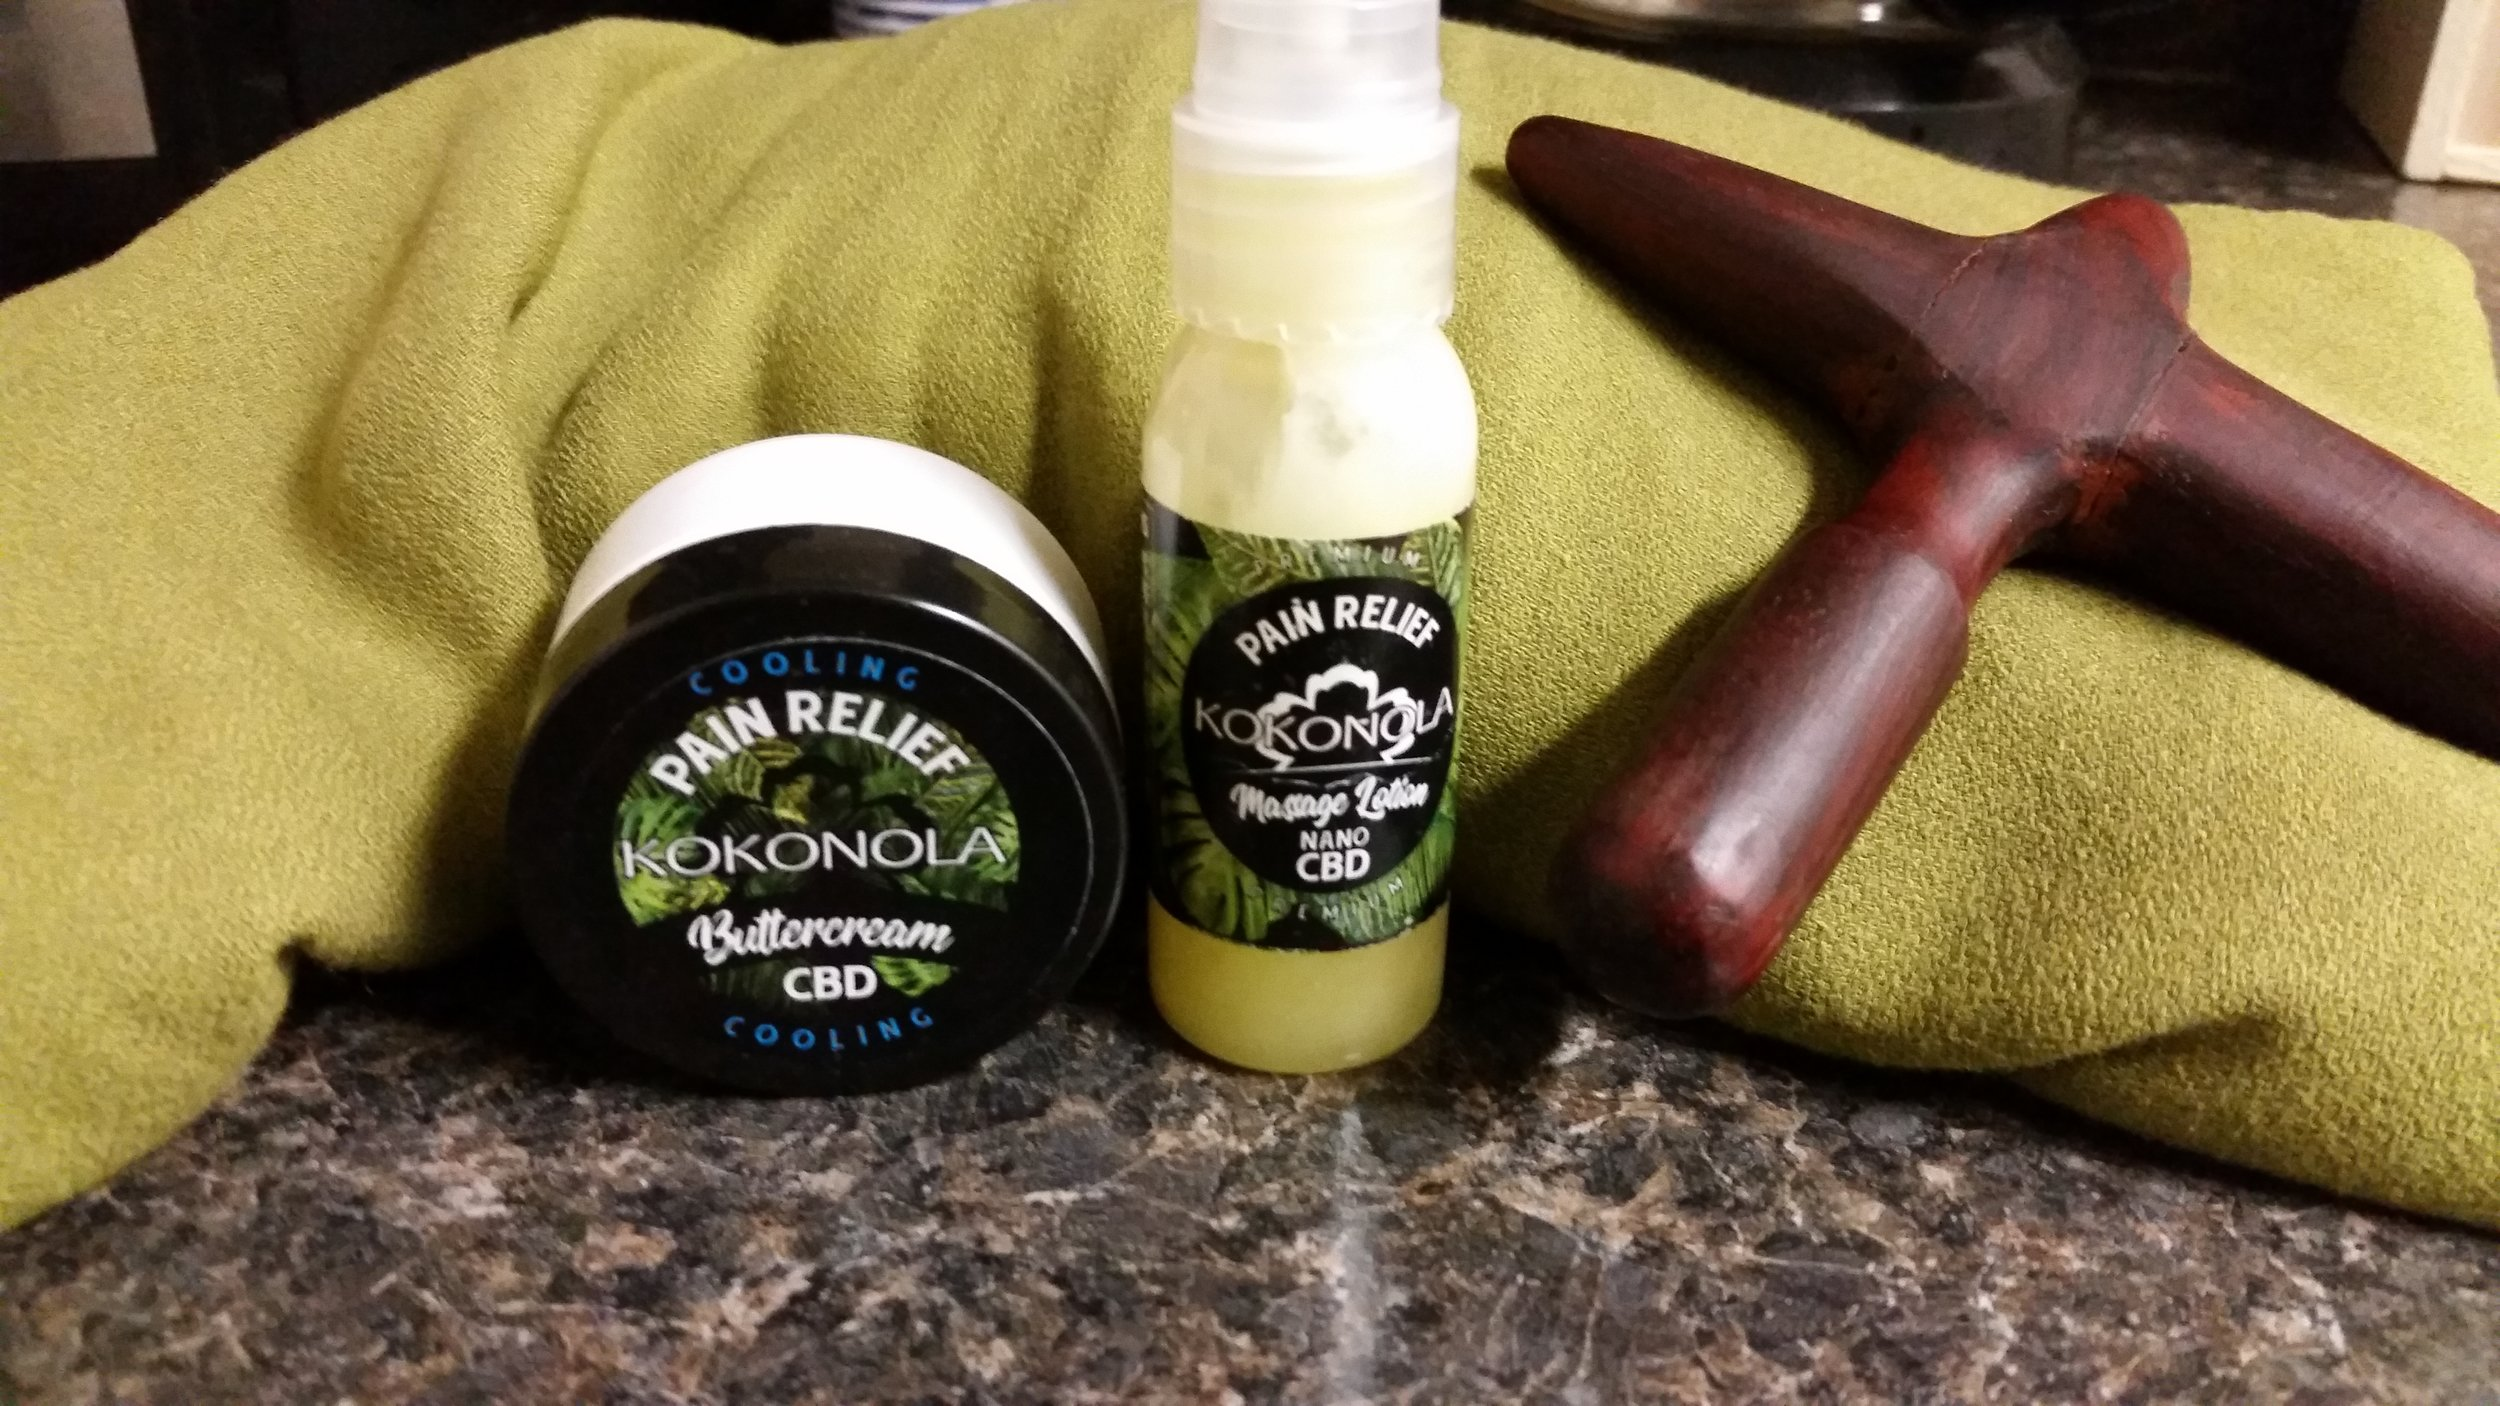 Pain Relief Home Kits - Care kits include:Herbal heat pack, CBD Salve or Creme, Fascia tool for self-care and demo/instruction on home use.  $85